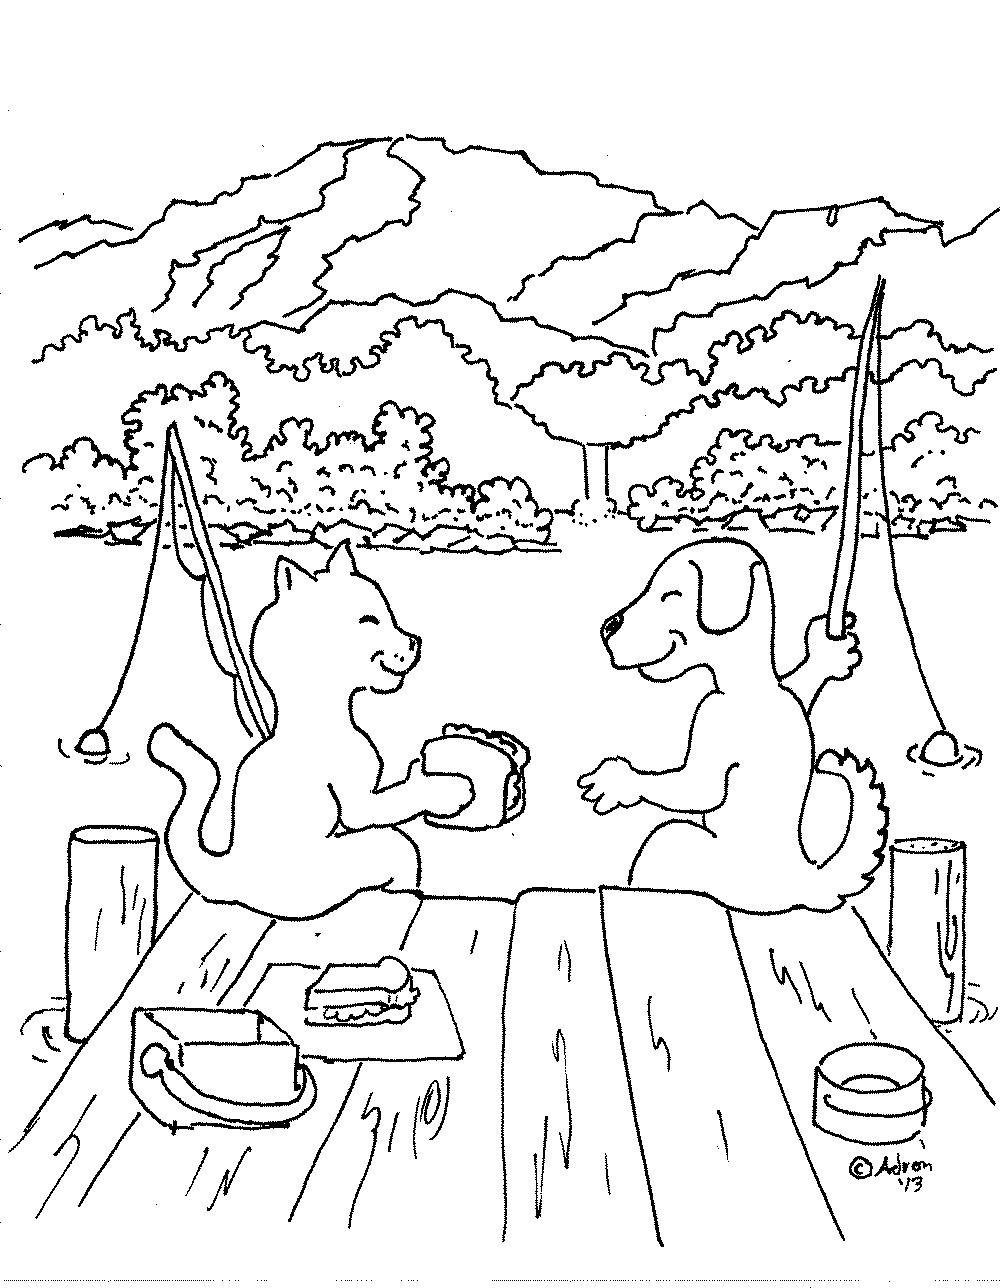 cat-dog-friendship-coloring-pages | | BestAppsForKids.com